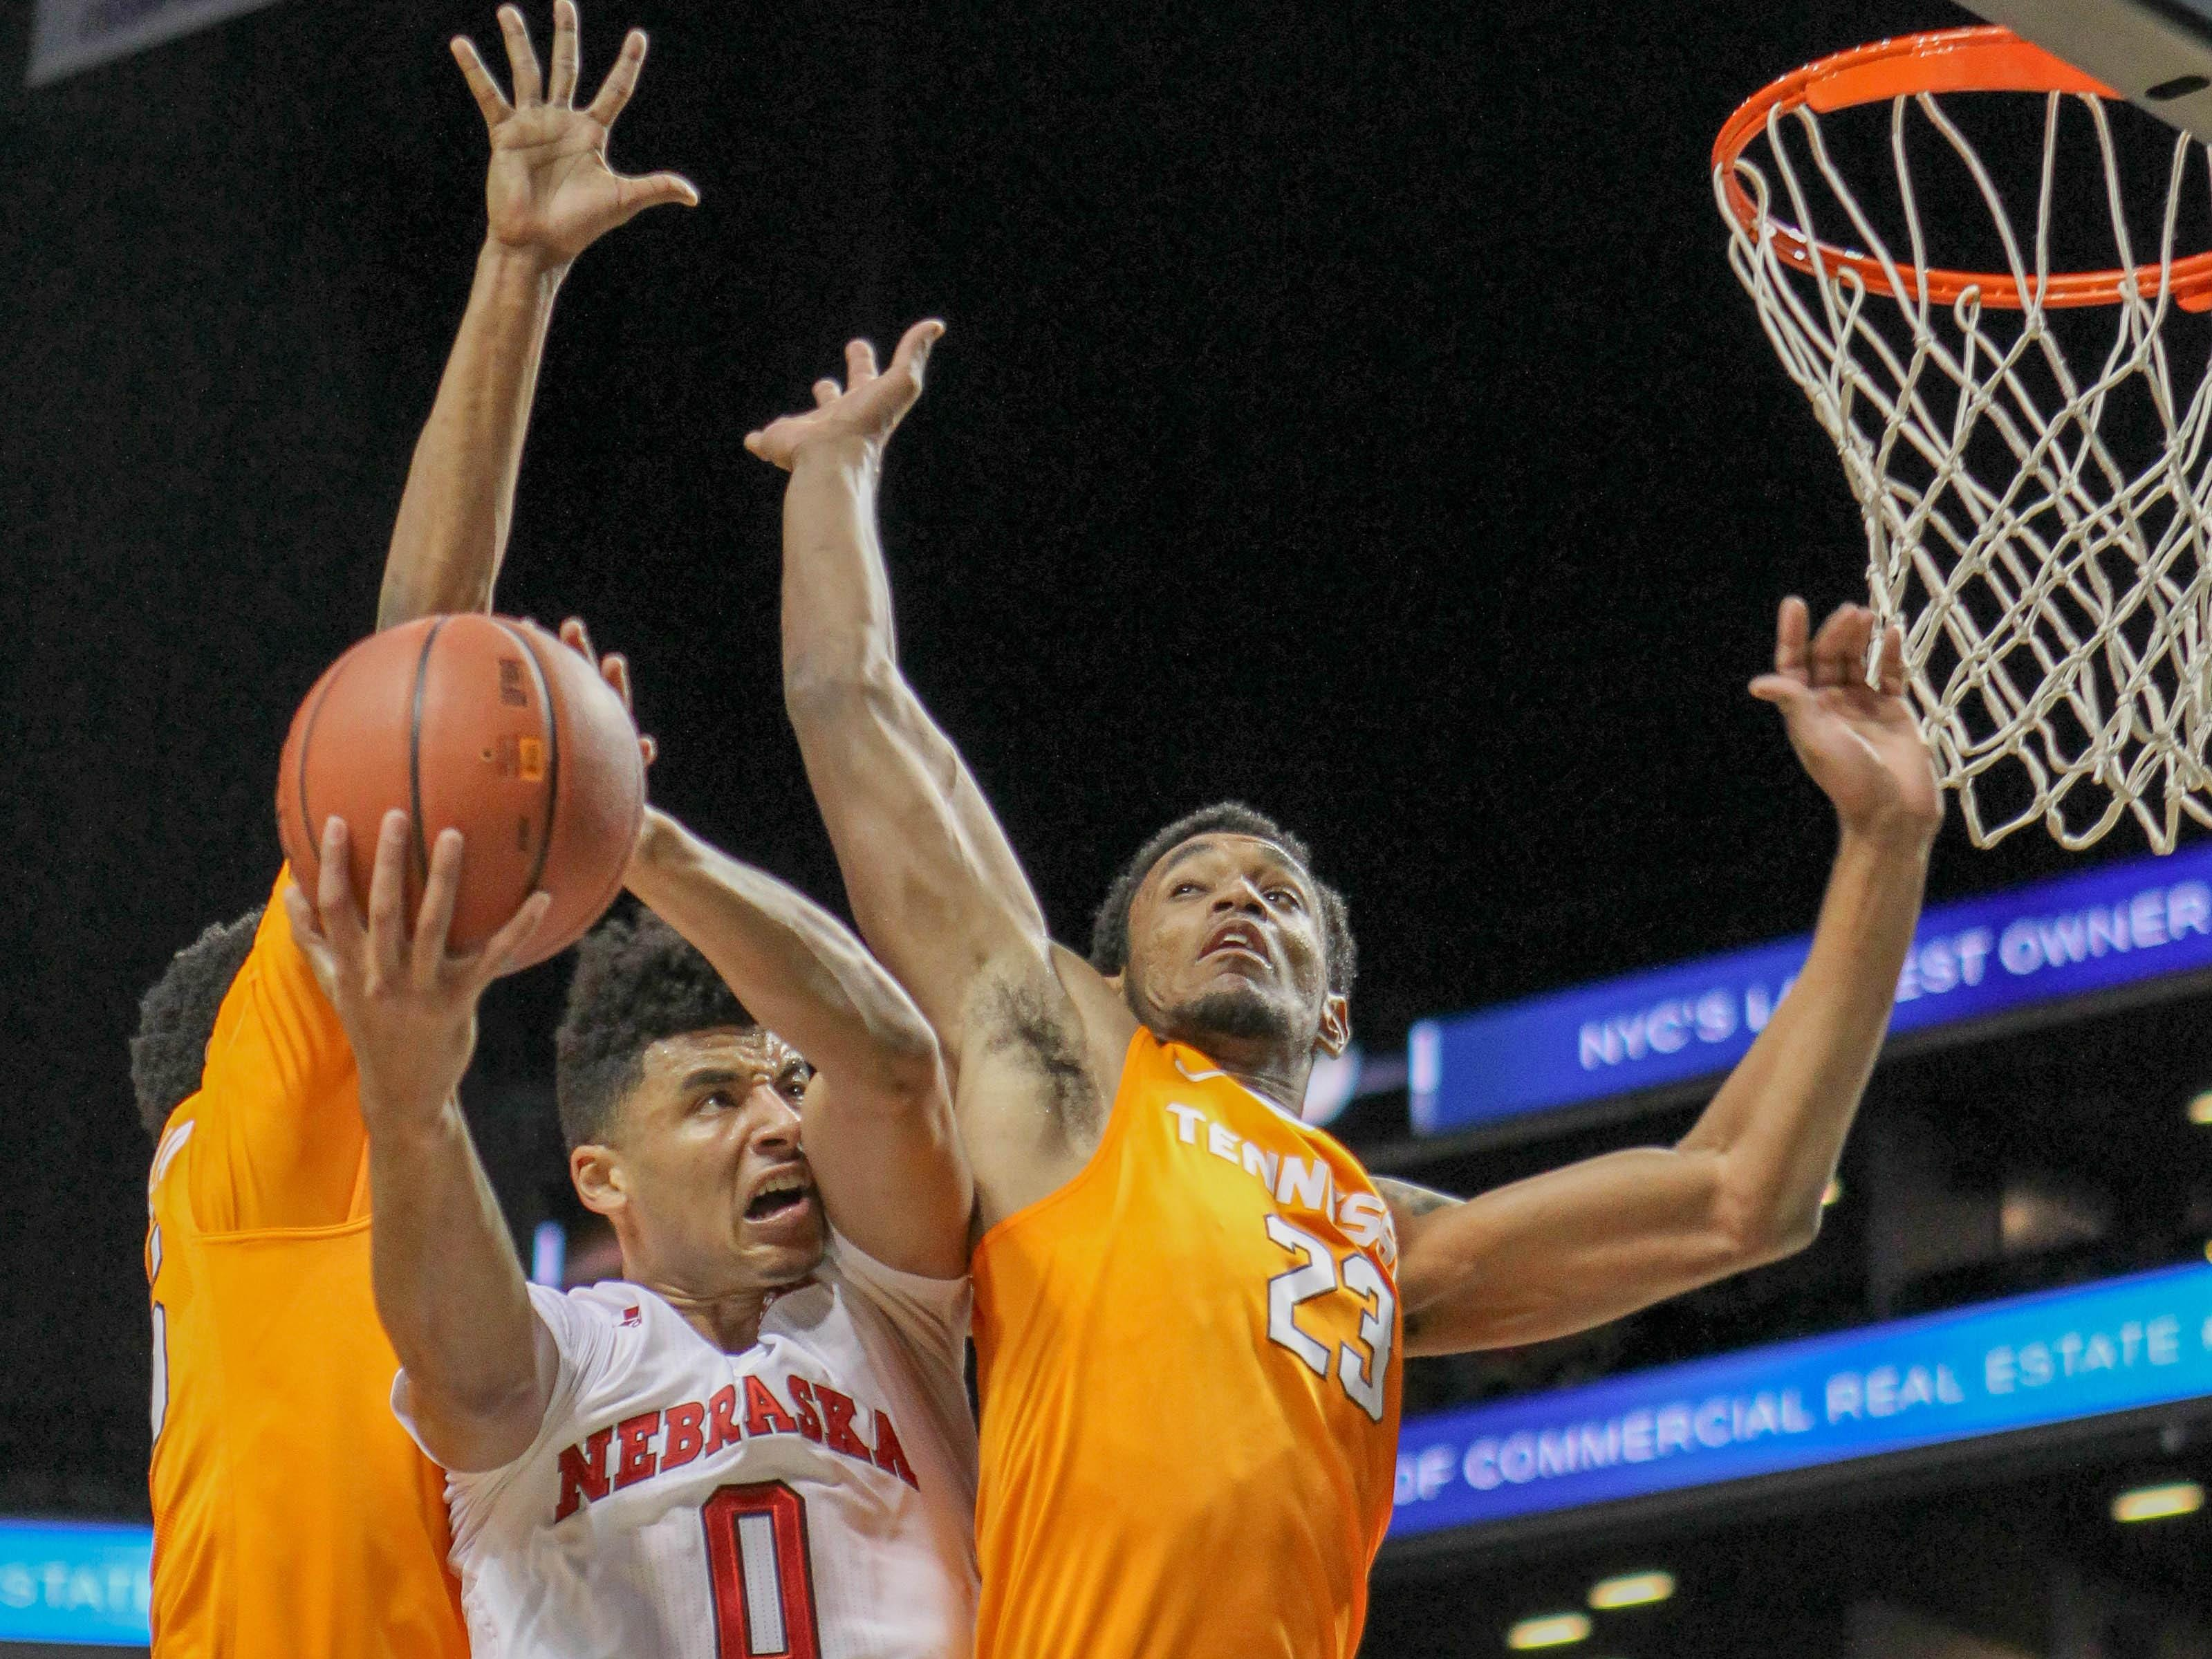 Nov 28, 2015; Brooklyn, NY, USA; Nebraska Cornhuskers guard Tai Webster (0) attempts to shoot past Tennessee Volunteers forward Derek Reese (23) during the consolation game at Barclays Center. Mandatory Credit: Vincent Carchietta-USA TODAY Sports